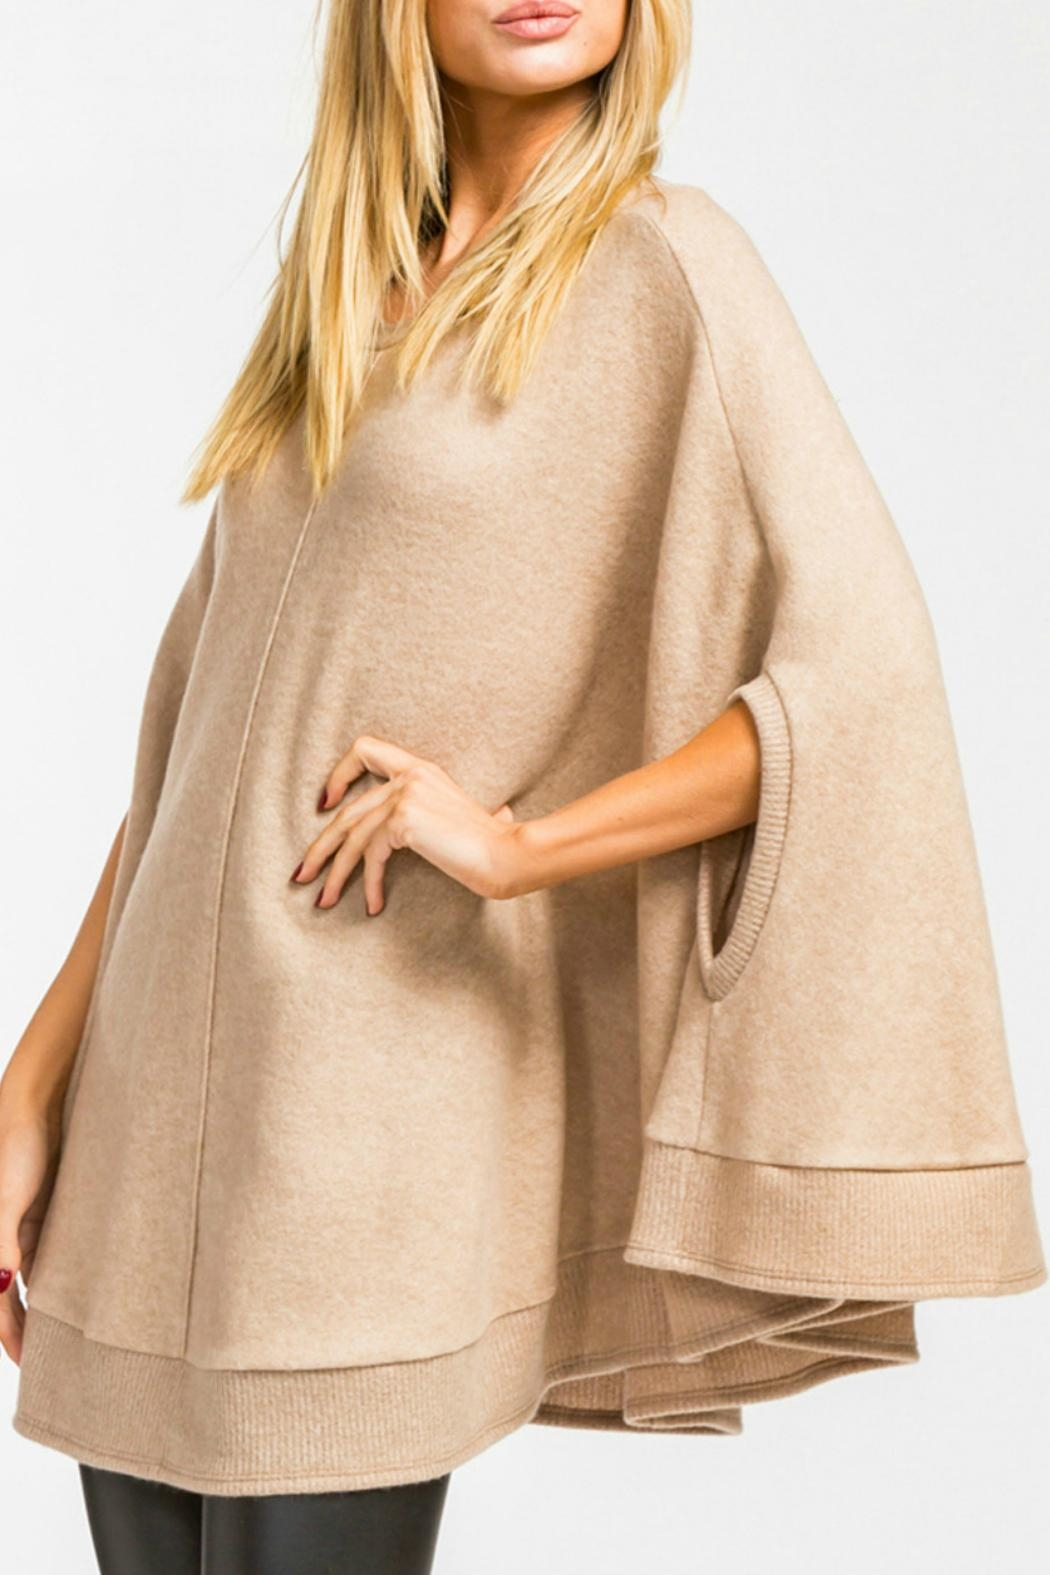 Cherish Taupe Poncho Sweater - Front Full Image